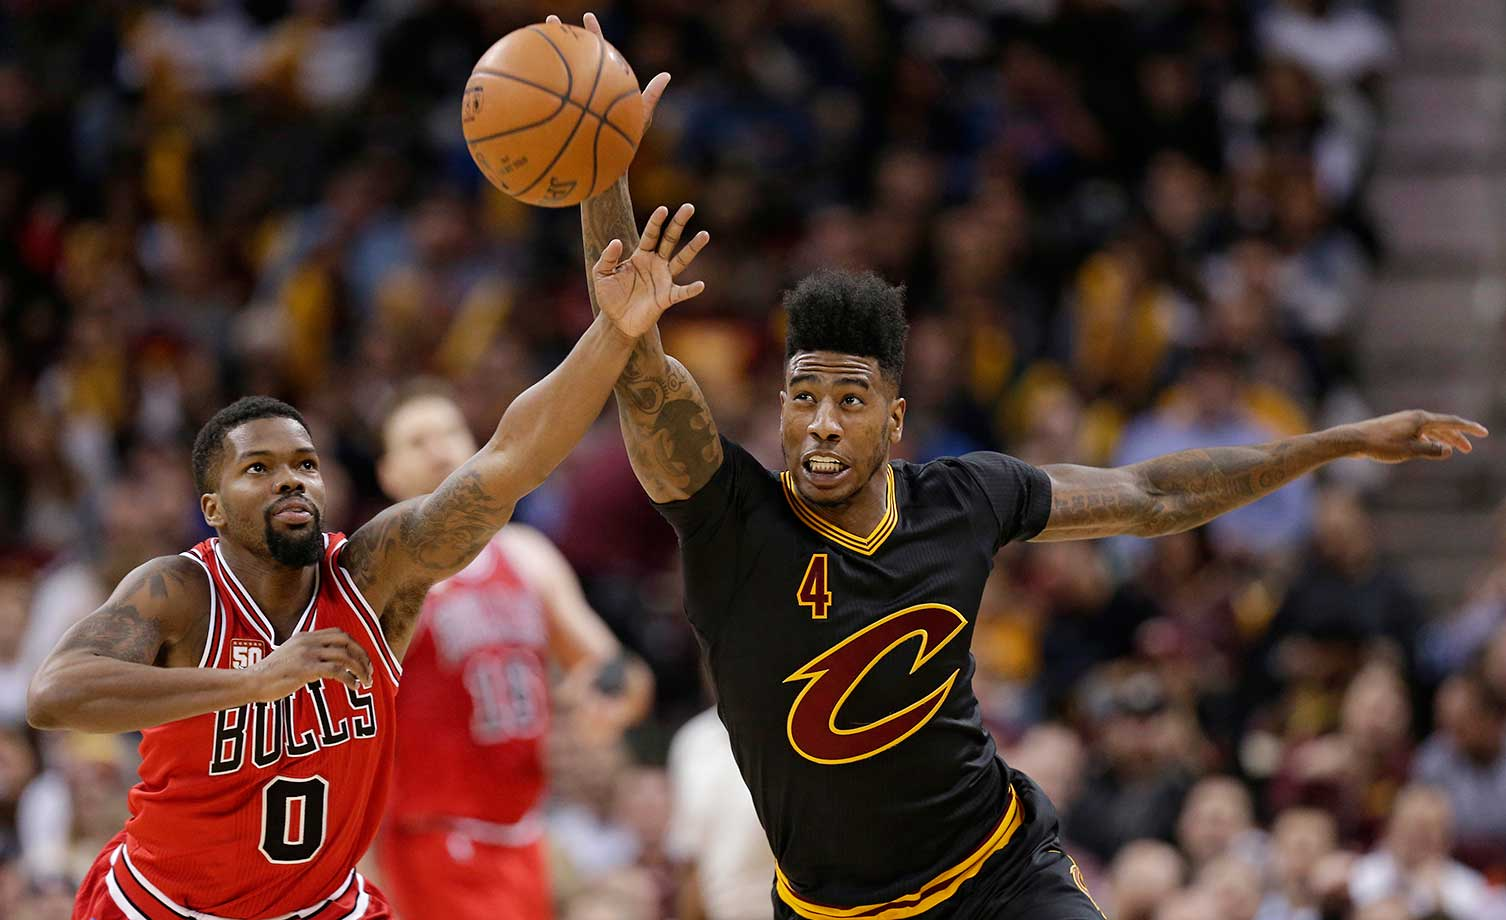 Iman Shumpert of Cleveland and Aaron Brooks of Chicago battle for a loose ball.